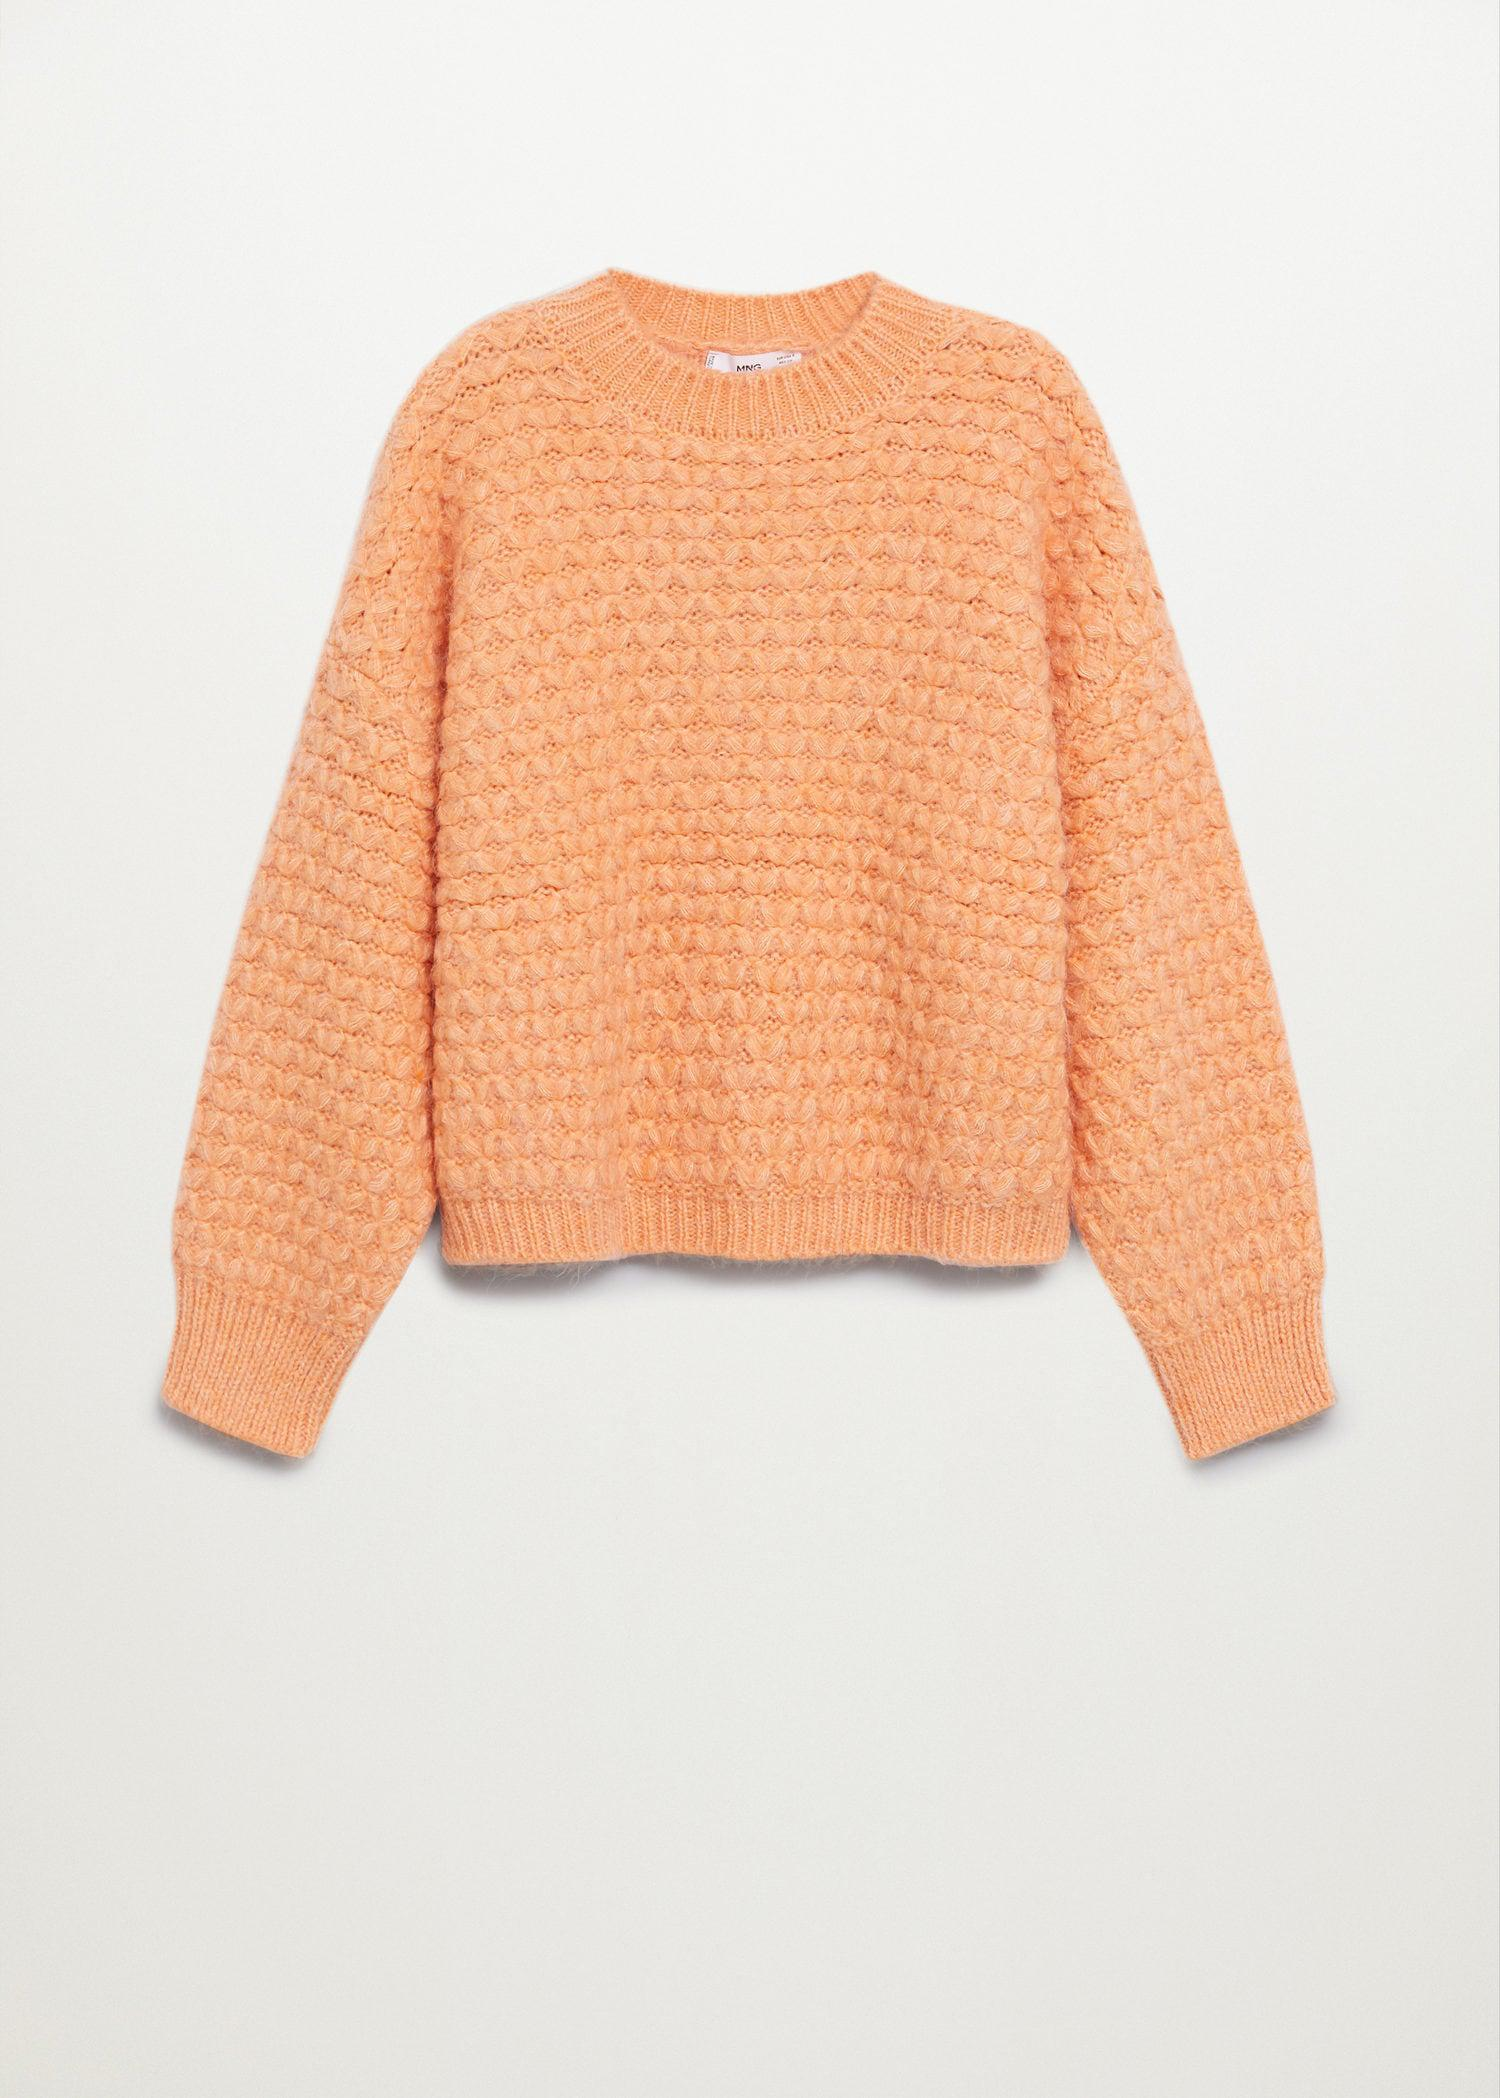 Textured knit sweater 6